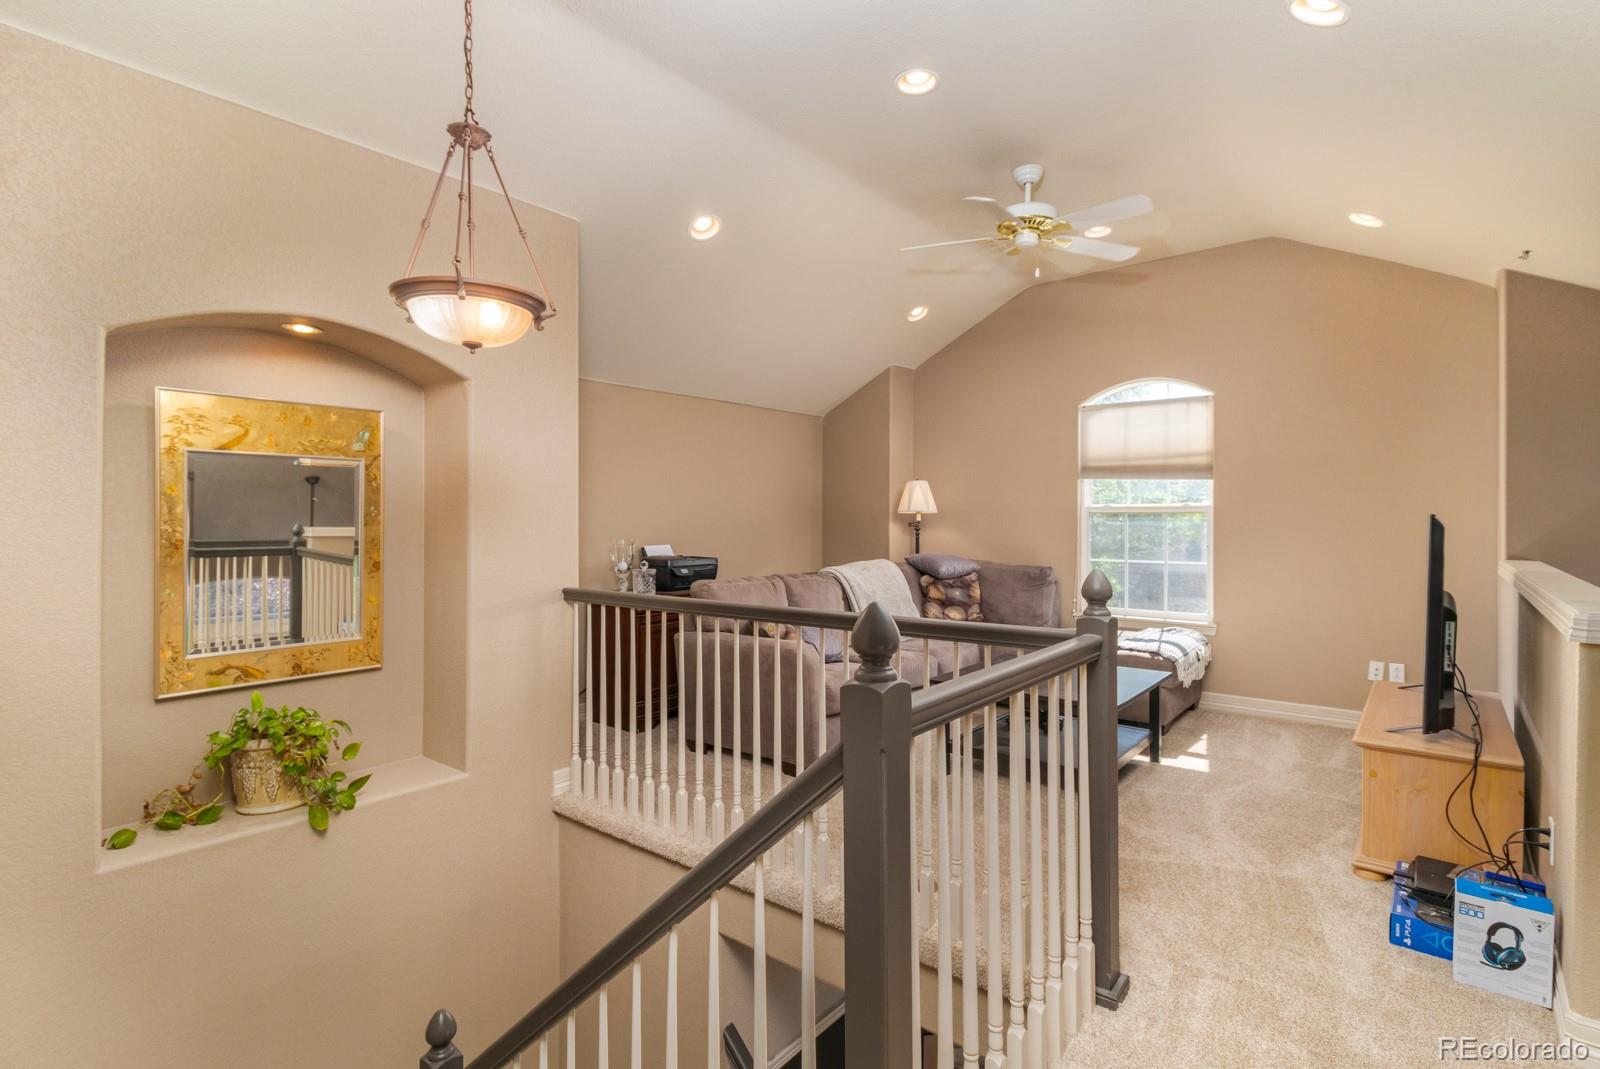 MLS# 7685605 - 22 - 8945 Tappy Toorie Circle, Highlands Ranch, CO 80129